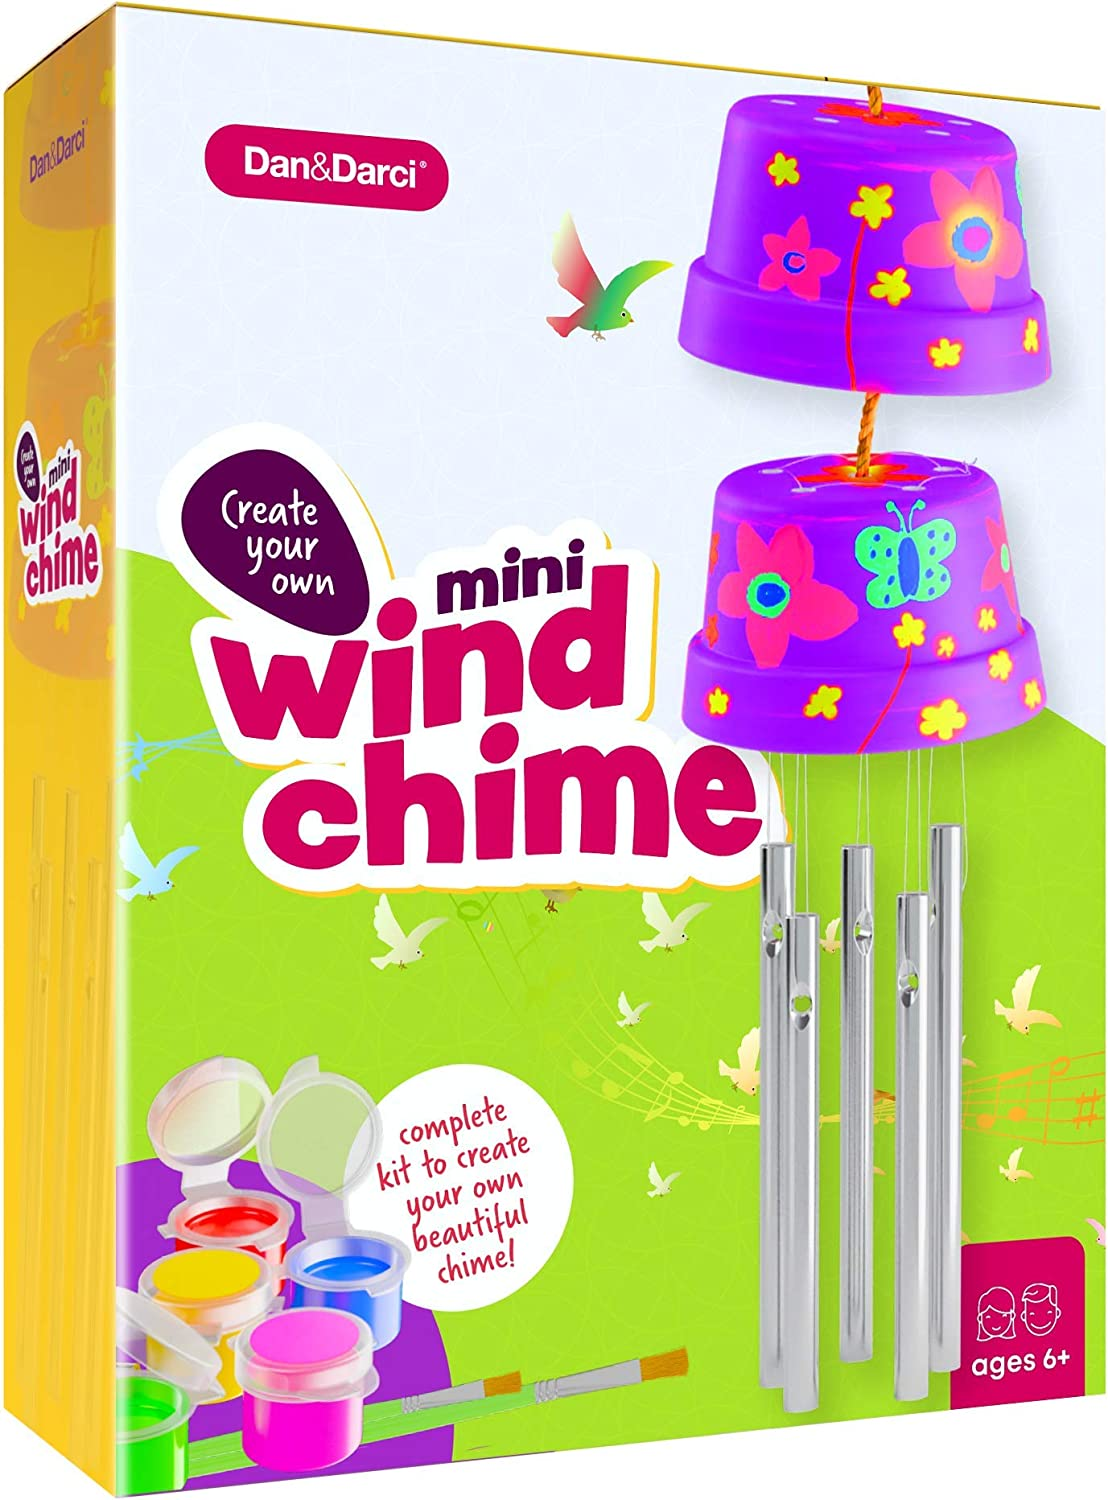 Create & Paint a Mini Wind Chime Making Kit - Arts and Crafts Gift for Girls & Boys Ages 4 5 6 7 8 9 10 -12 - Birthday & Christmas Gifts for Kids - Kid Art & Craft Kits - DIY Stuff for Girl Age 4-12